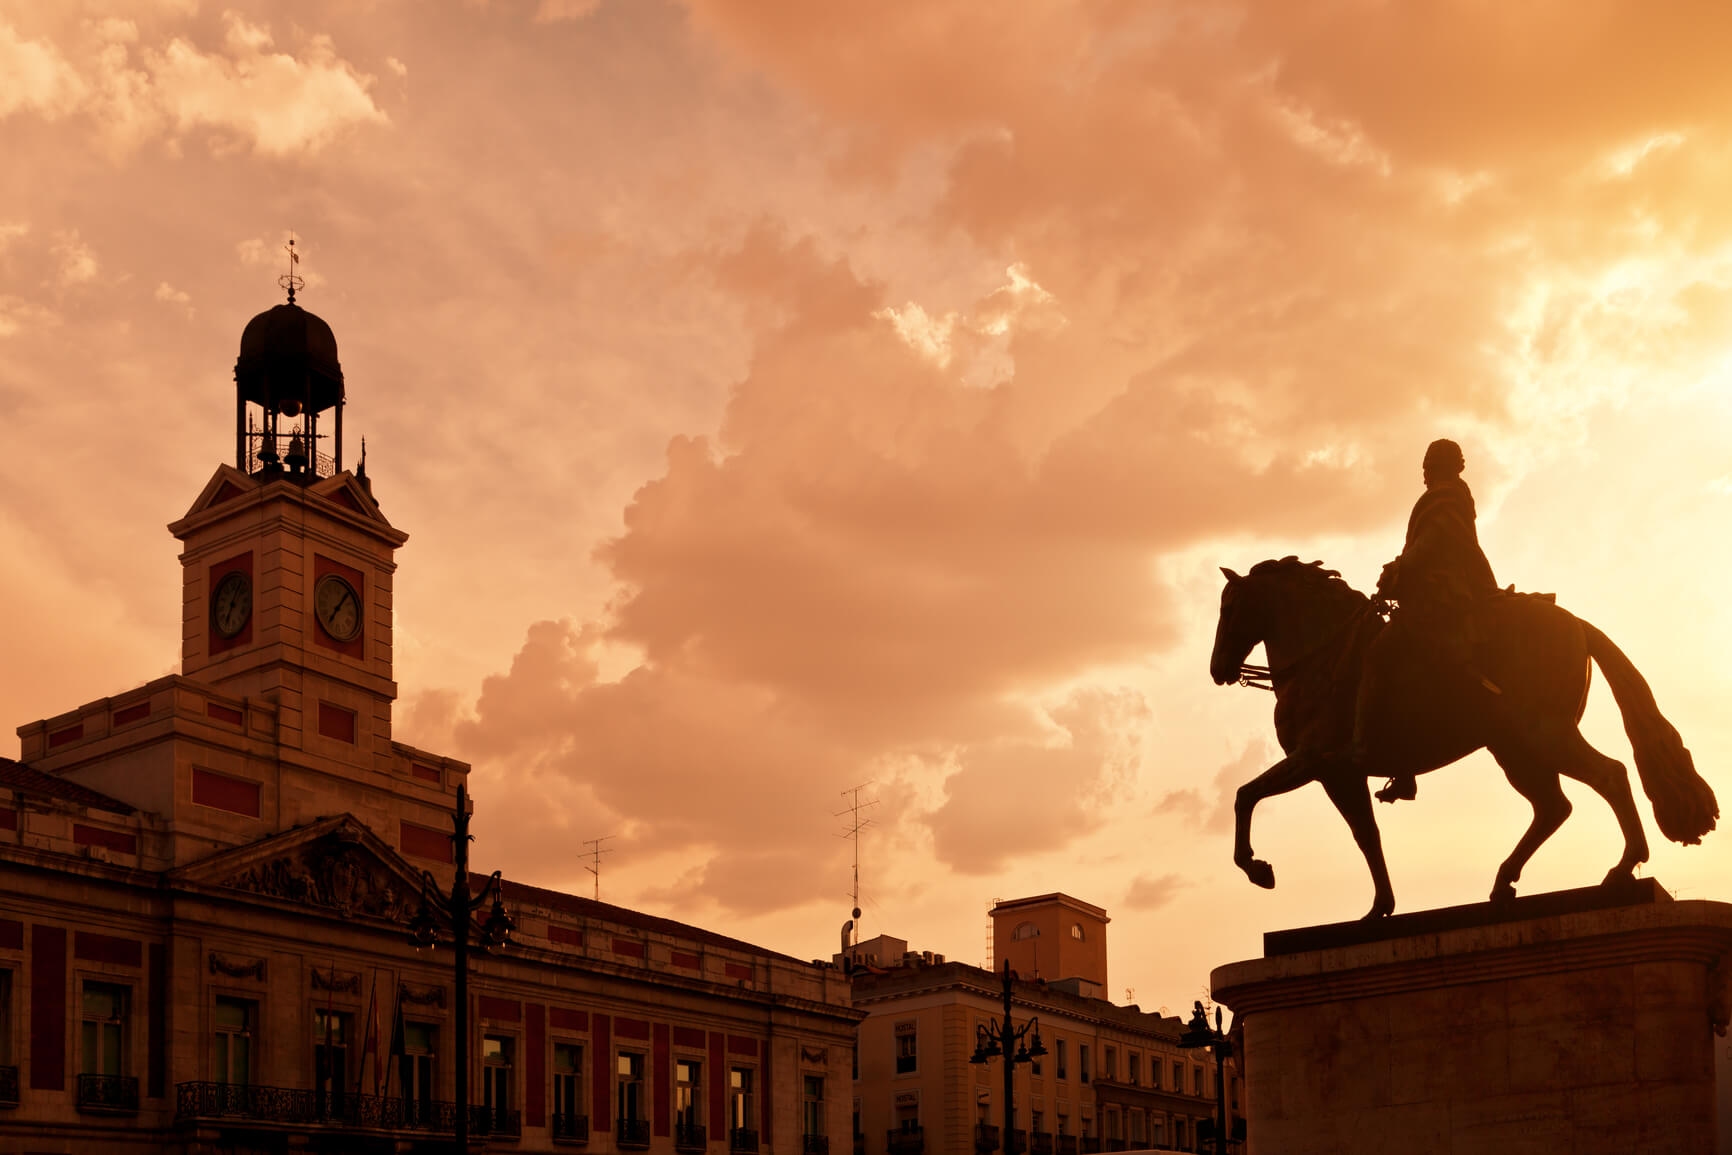 San Francisco to Madrid, Spain for only $380 roundtrip